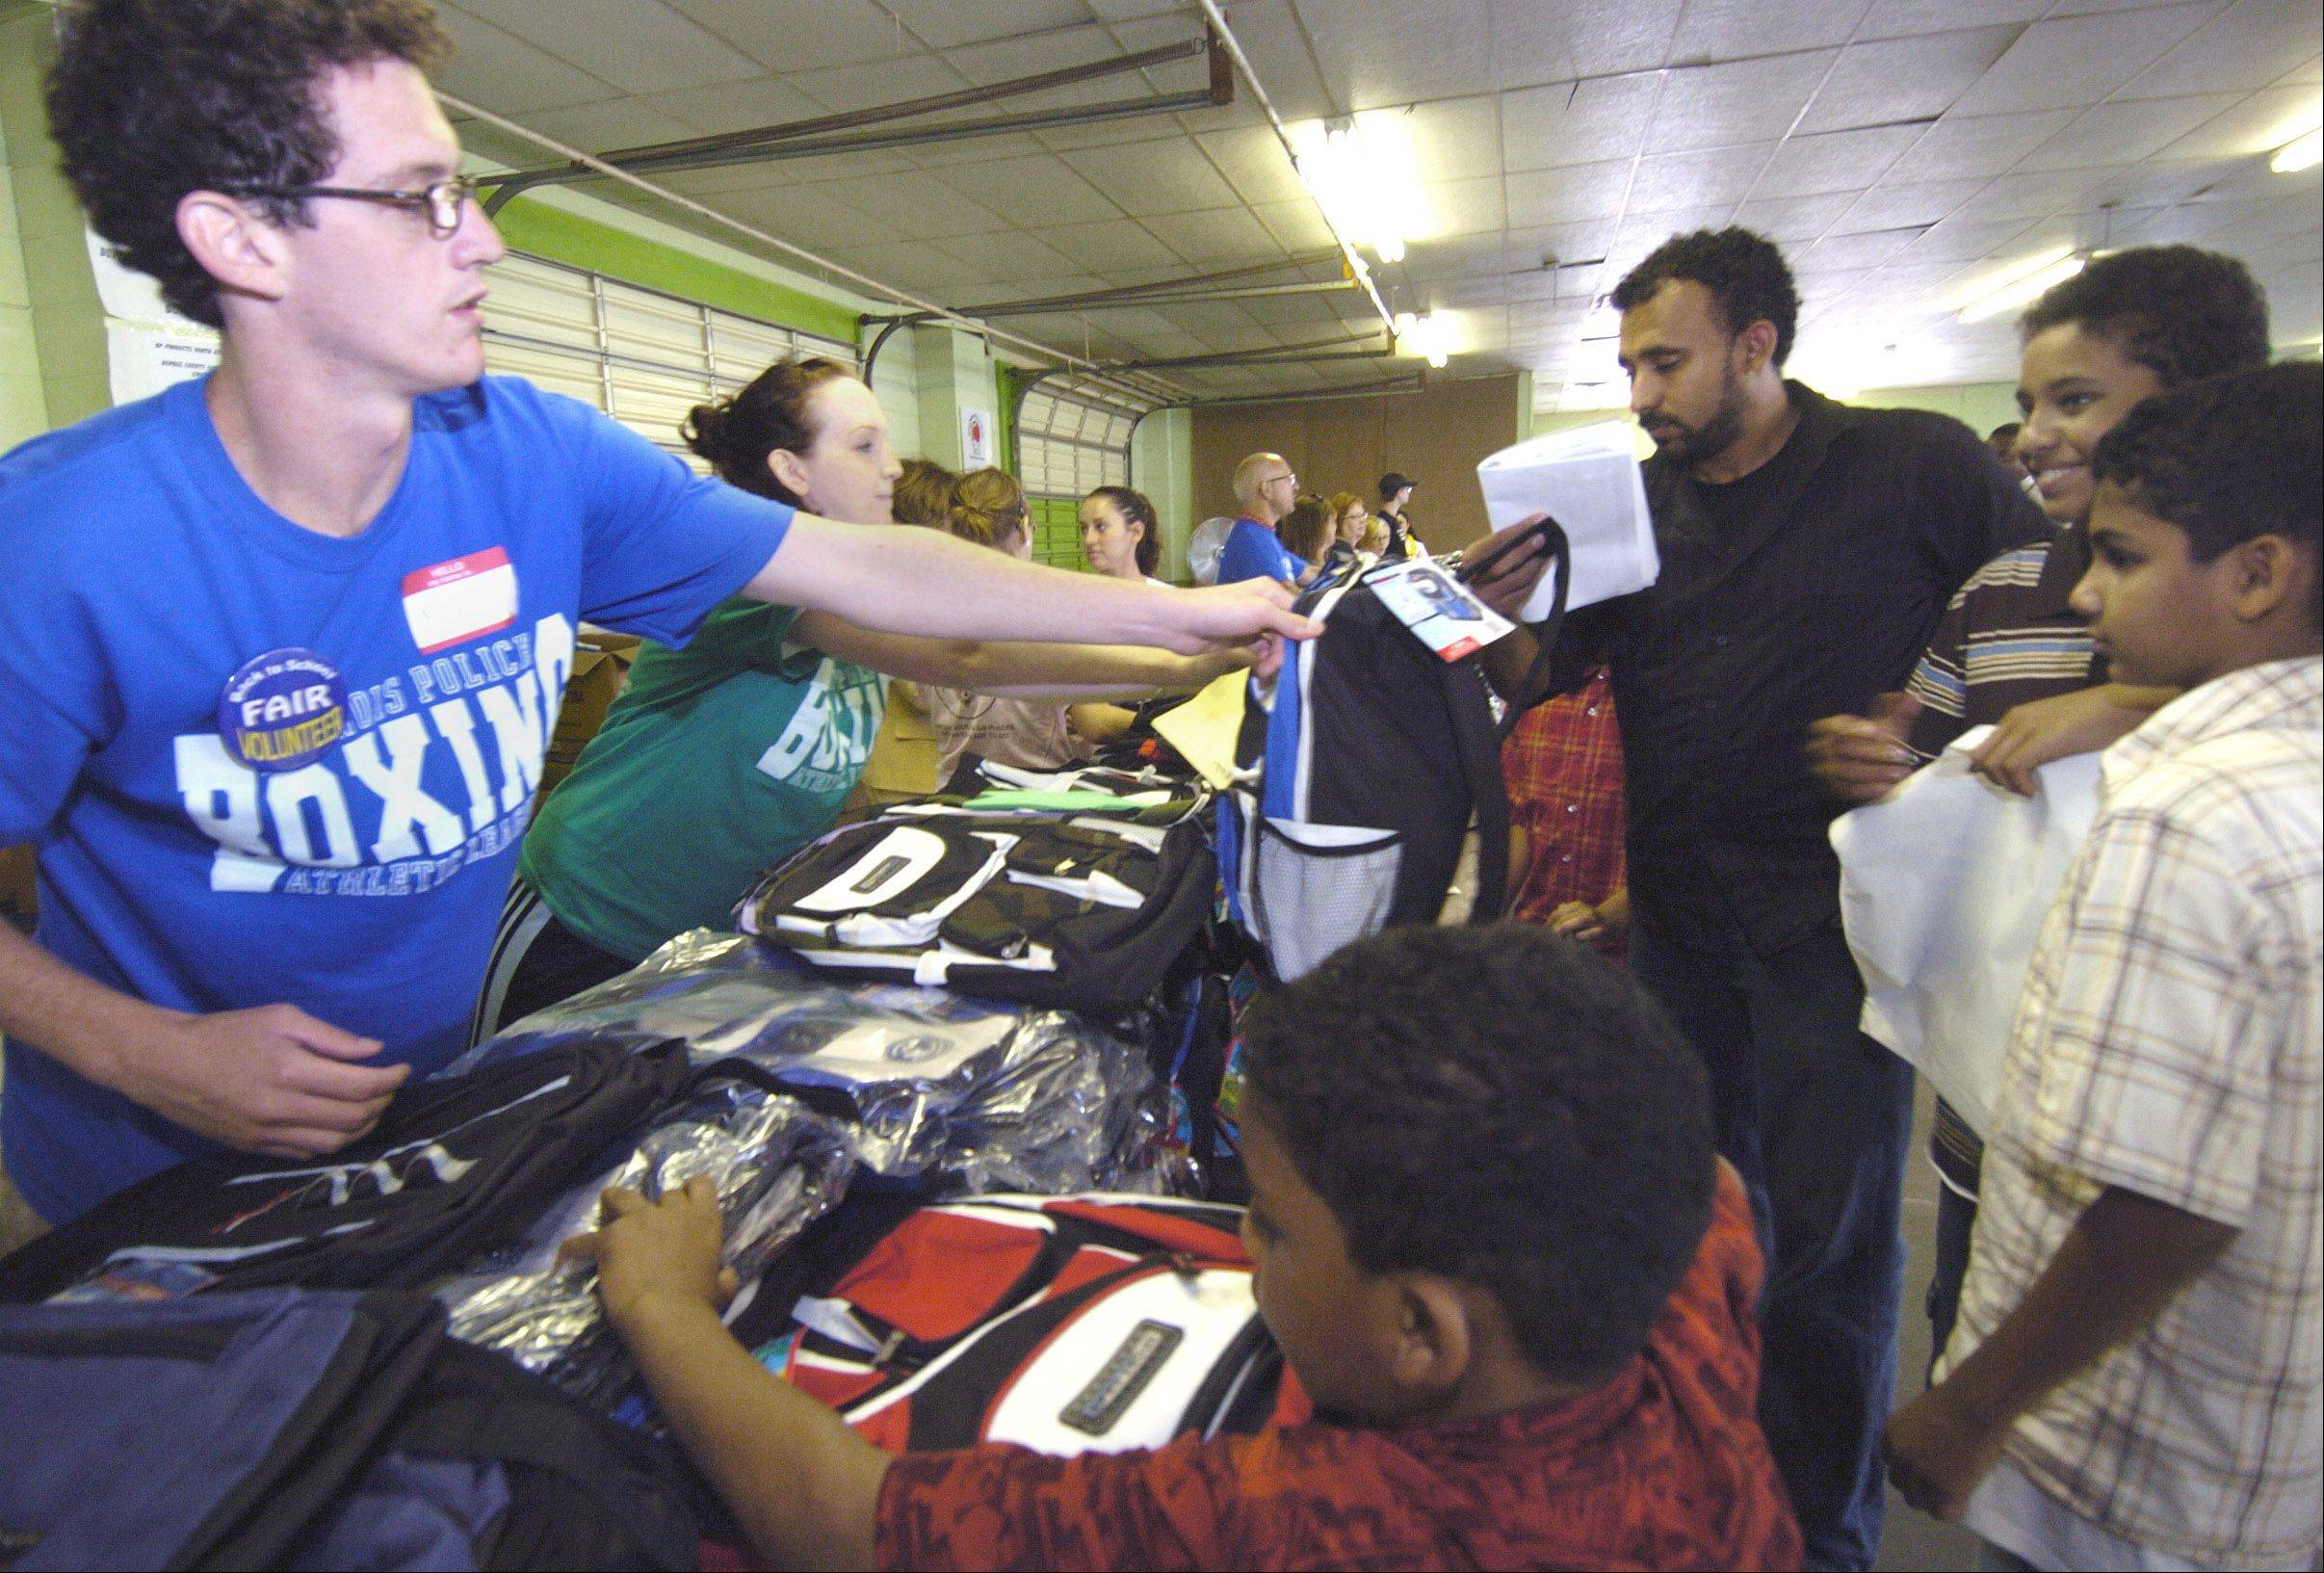 The annual Catholic Charities Back to School Fair will provide school supplies and other services for low-income families from 11 a.m. to 6 p.m. Wednesday, Aug. 8, at the DuPage County Fairgrounds in Wheaton.